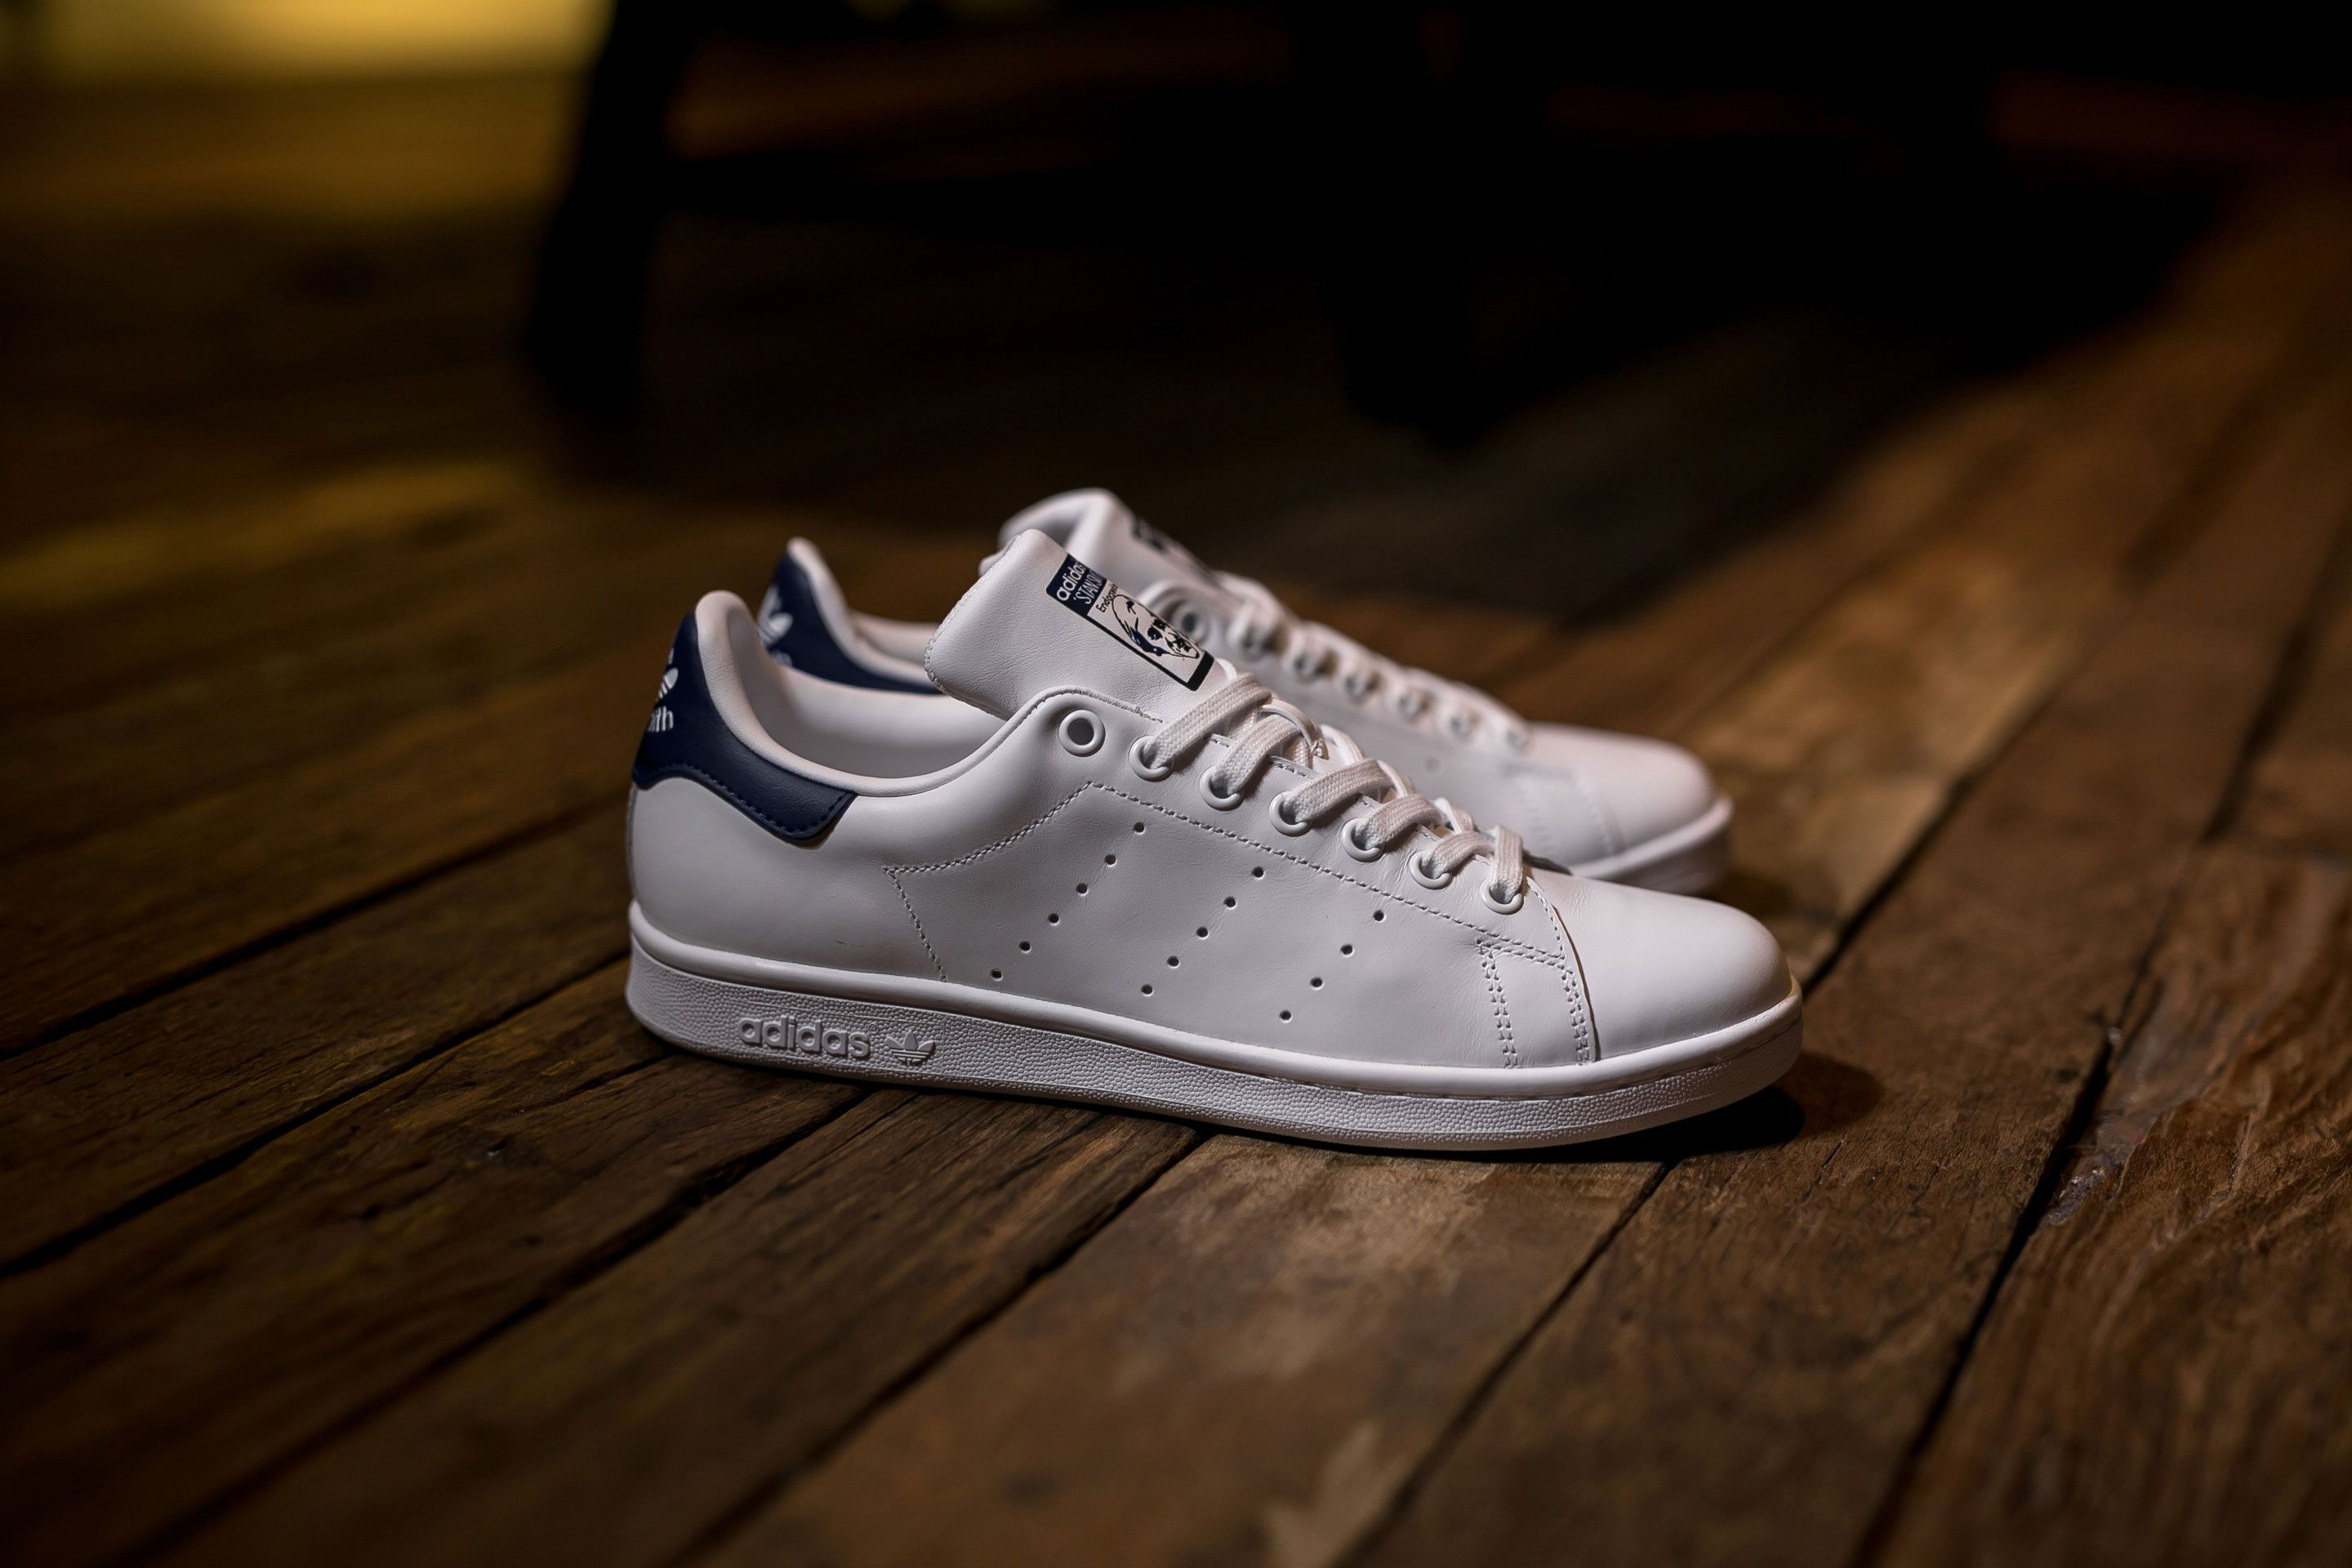 00d9df3d Adidas Stan Smith, White/Navy. Available in all #CROSSOVER and Online.  🌐www.crossoverconceptstore.com #adidas #adidasMY #crossoverconceptstore